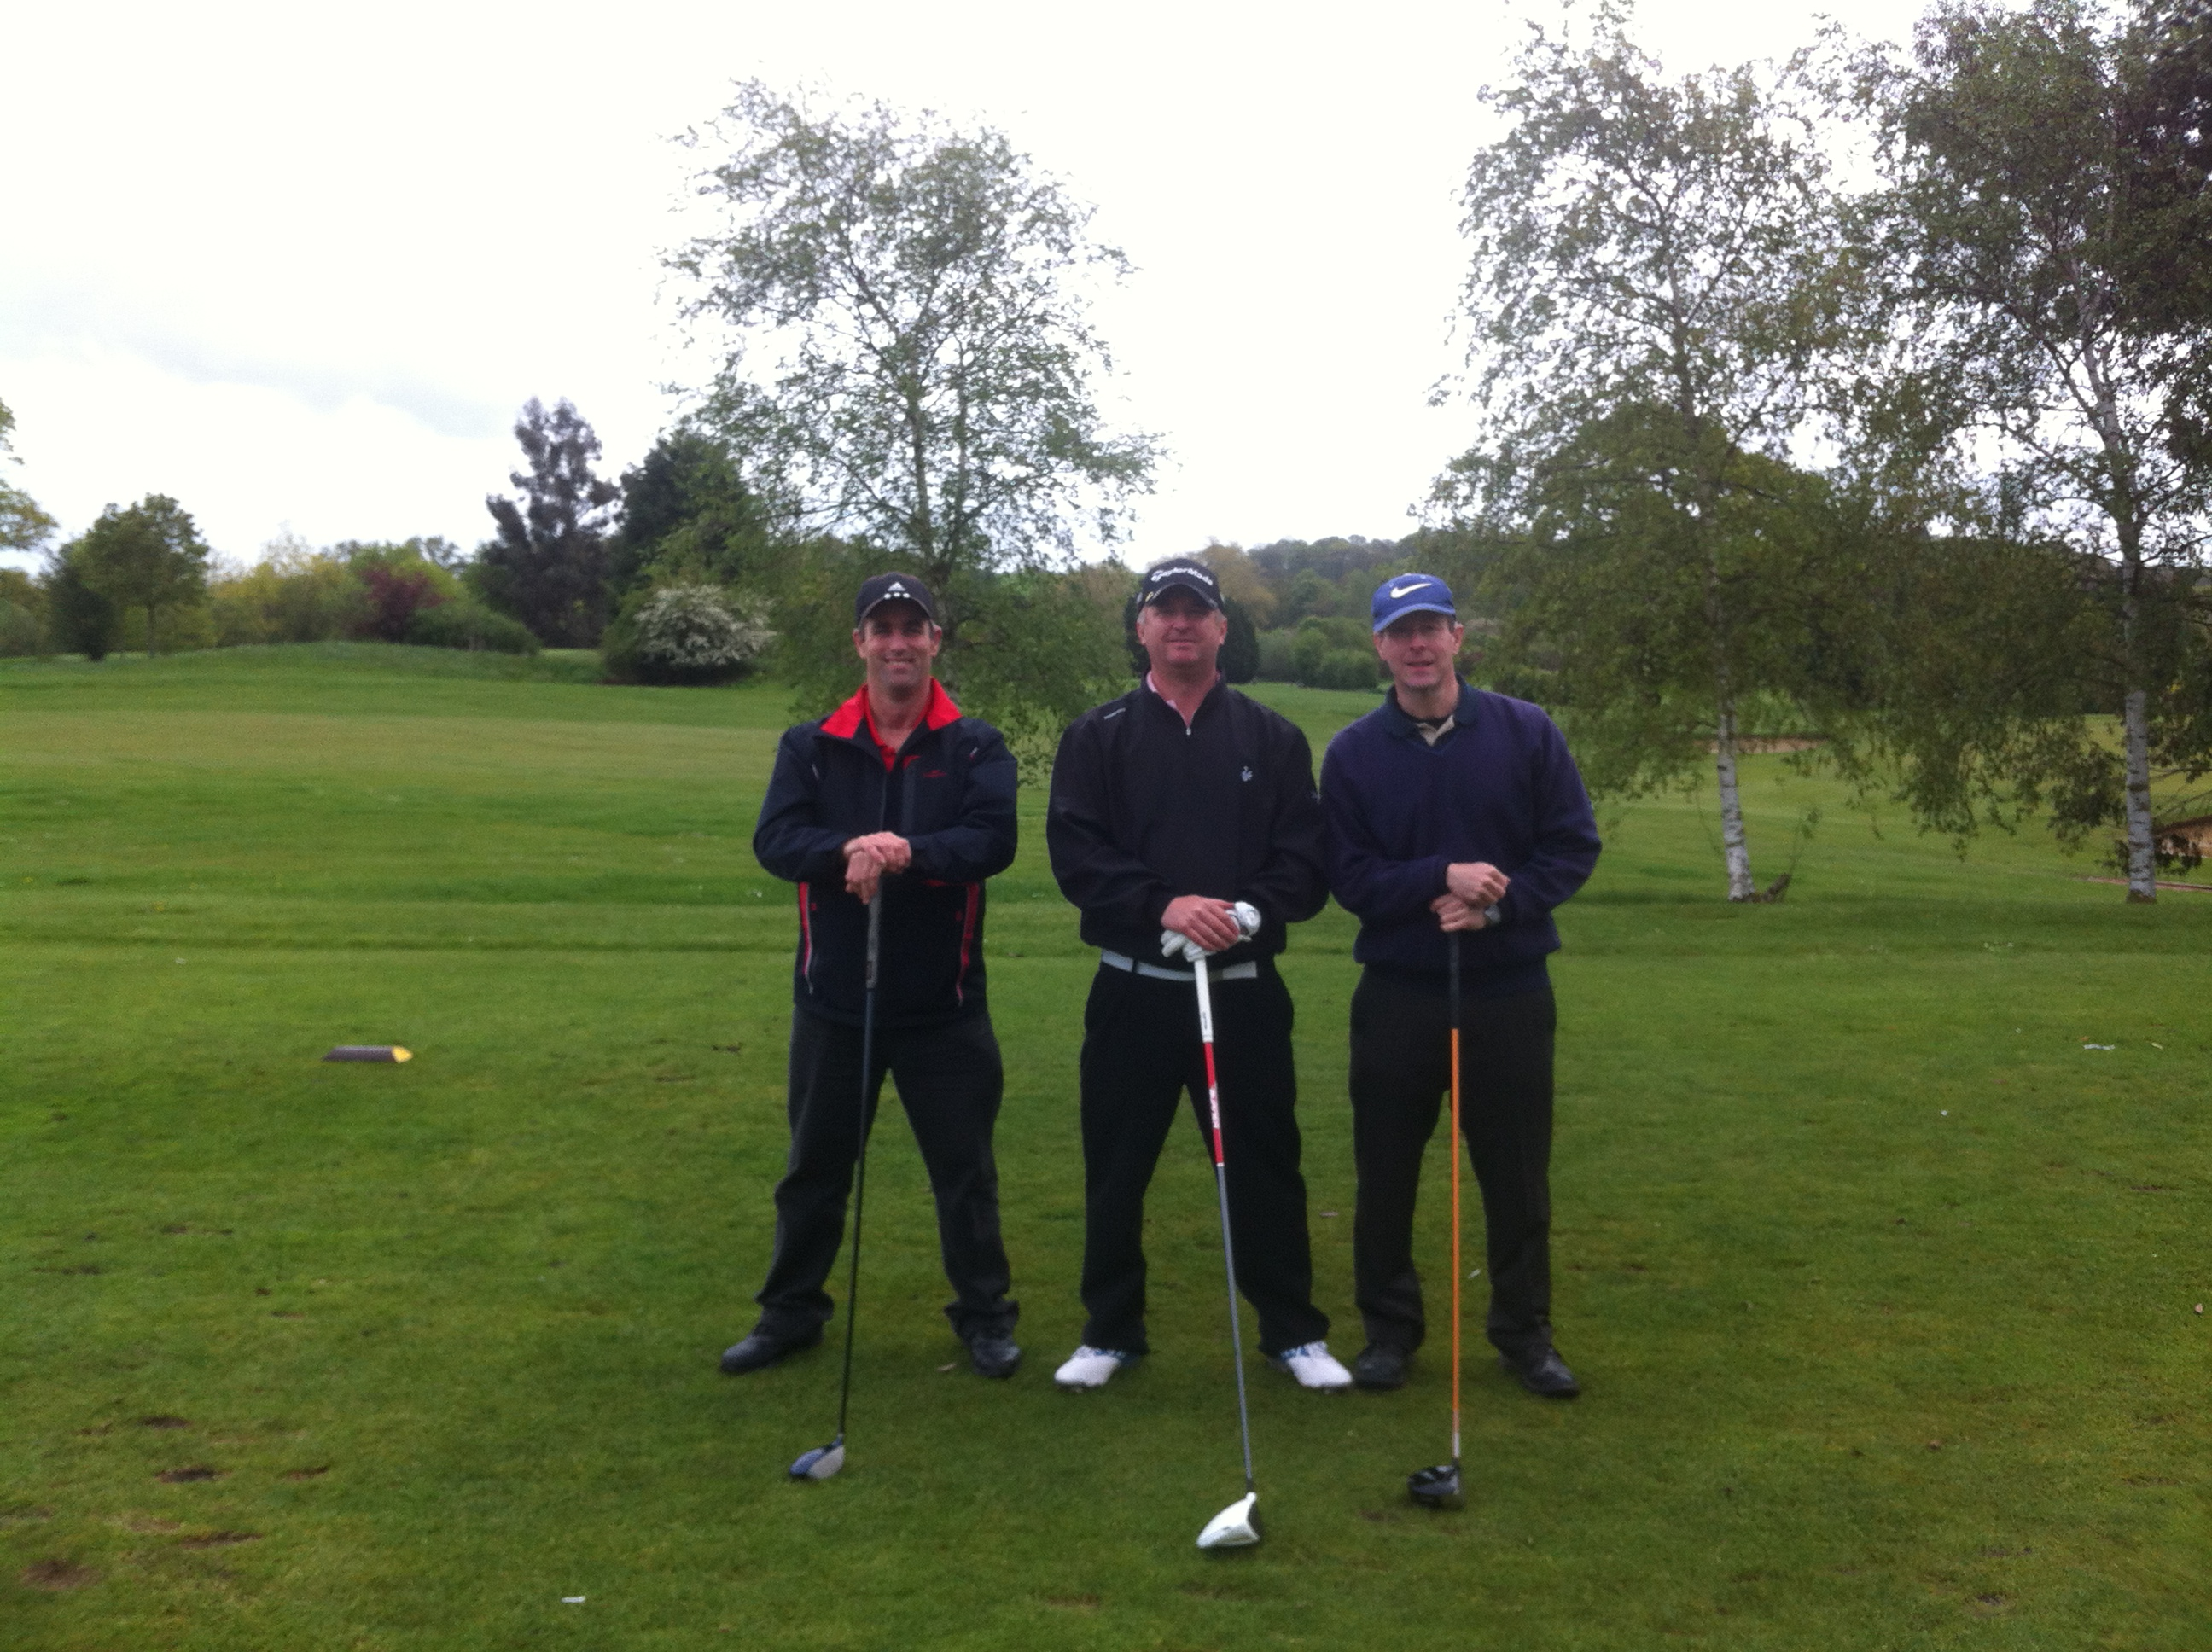 1st Tee Group